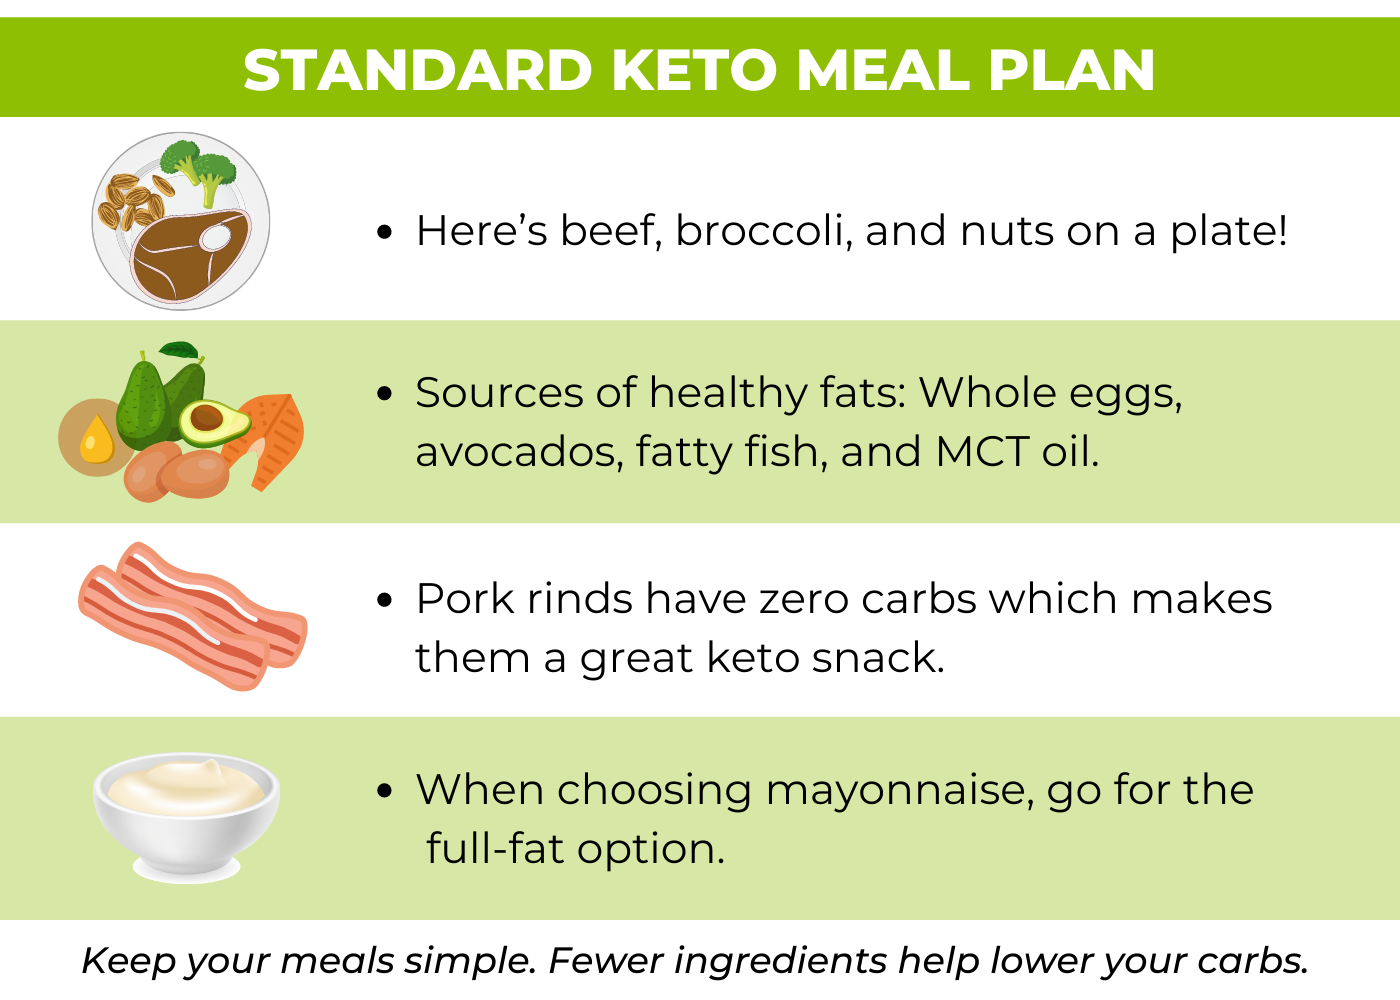 standard keto meal plan infographic